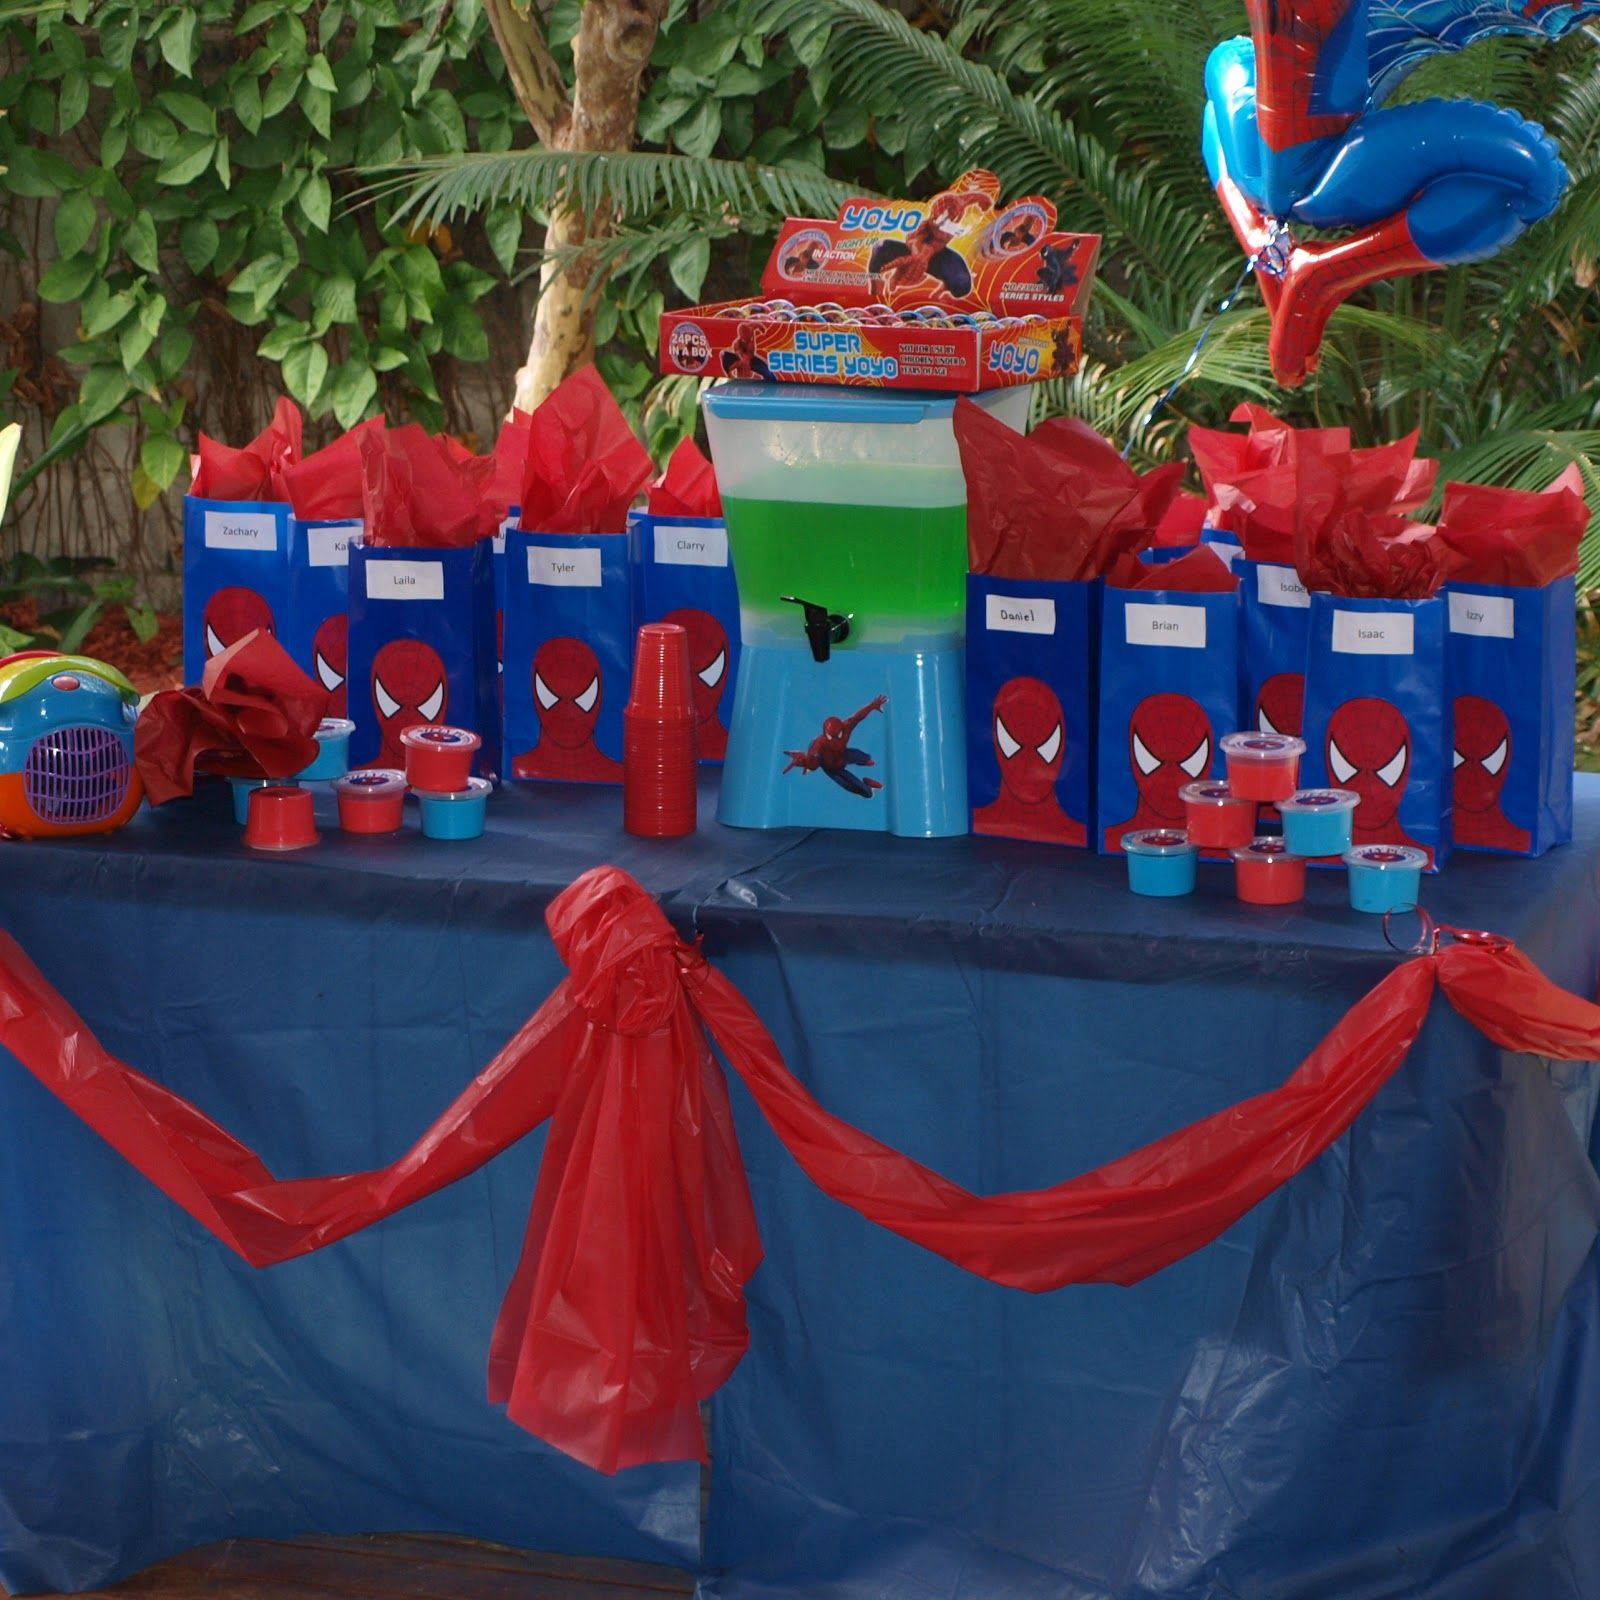 spiderman birthday party ideas for 4 year old – birthday presents